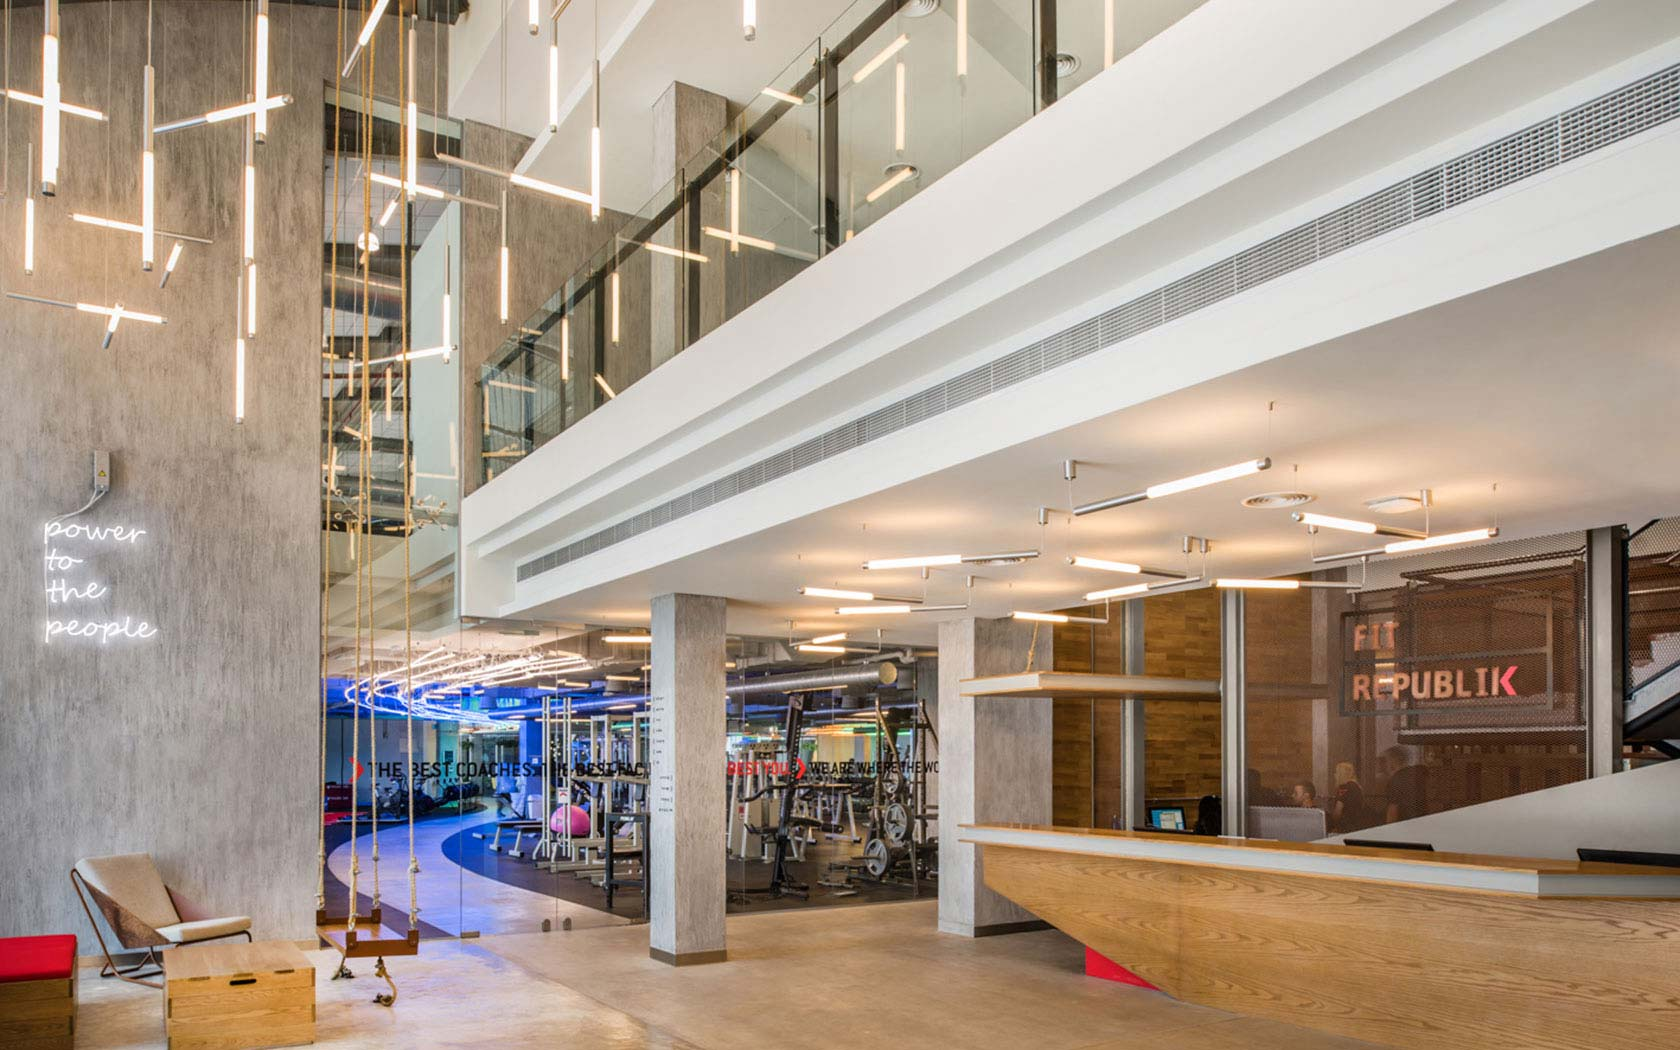 Delta Lighting Solutions Projects Fit Republic